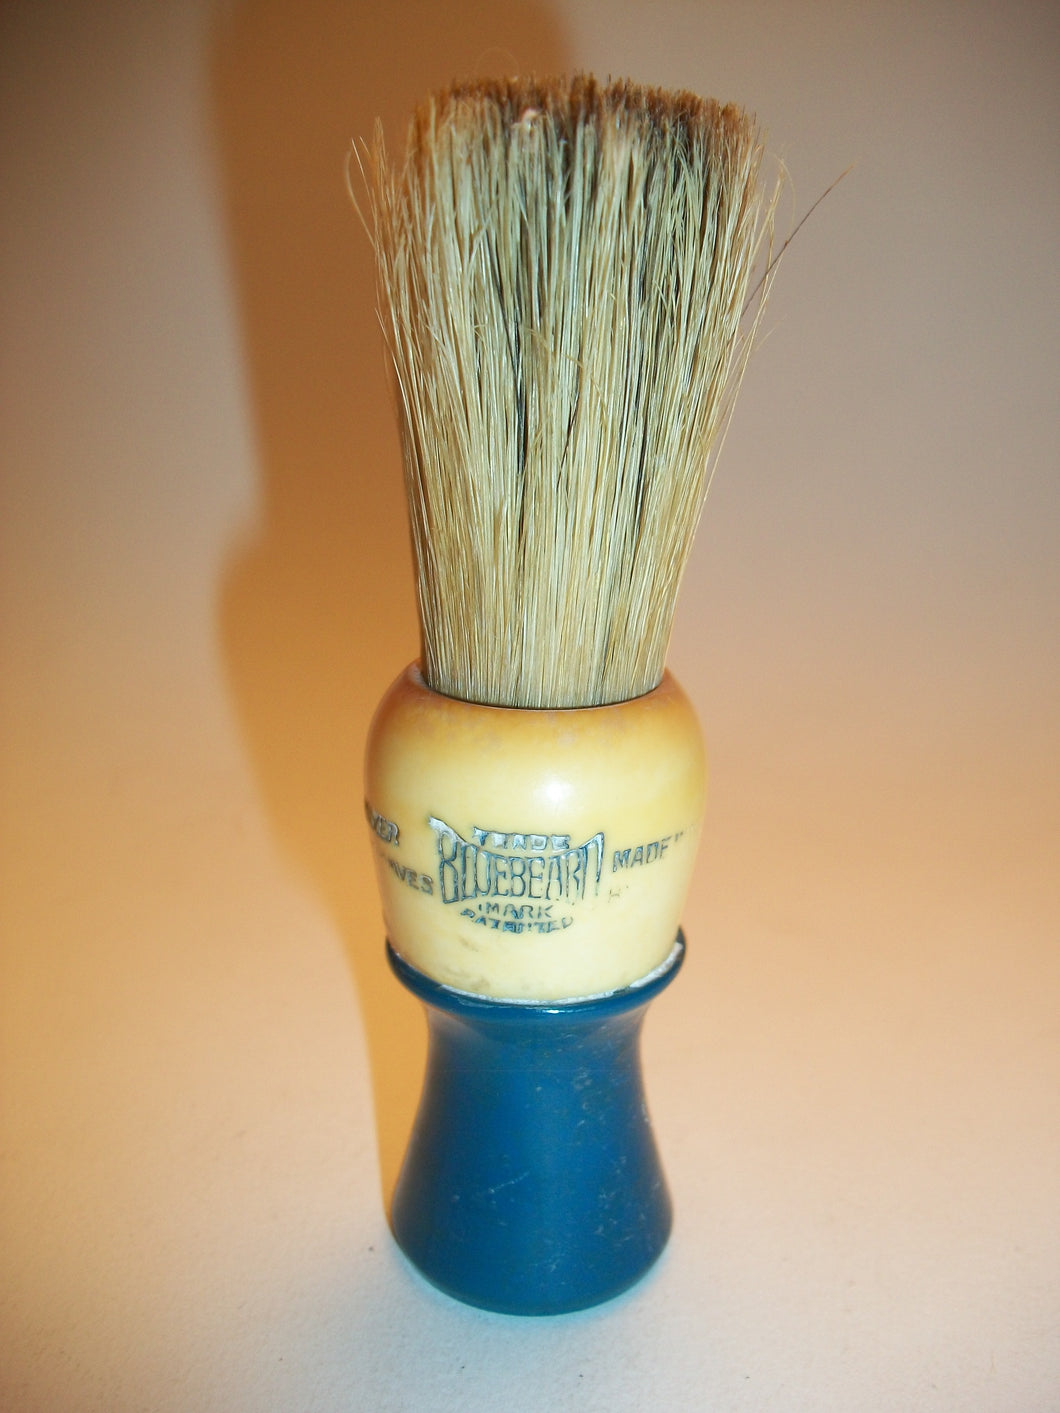 Vintage Bluebeard Shaving Brush